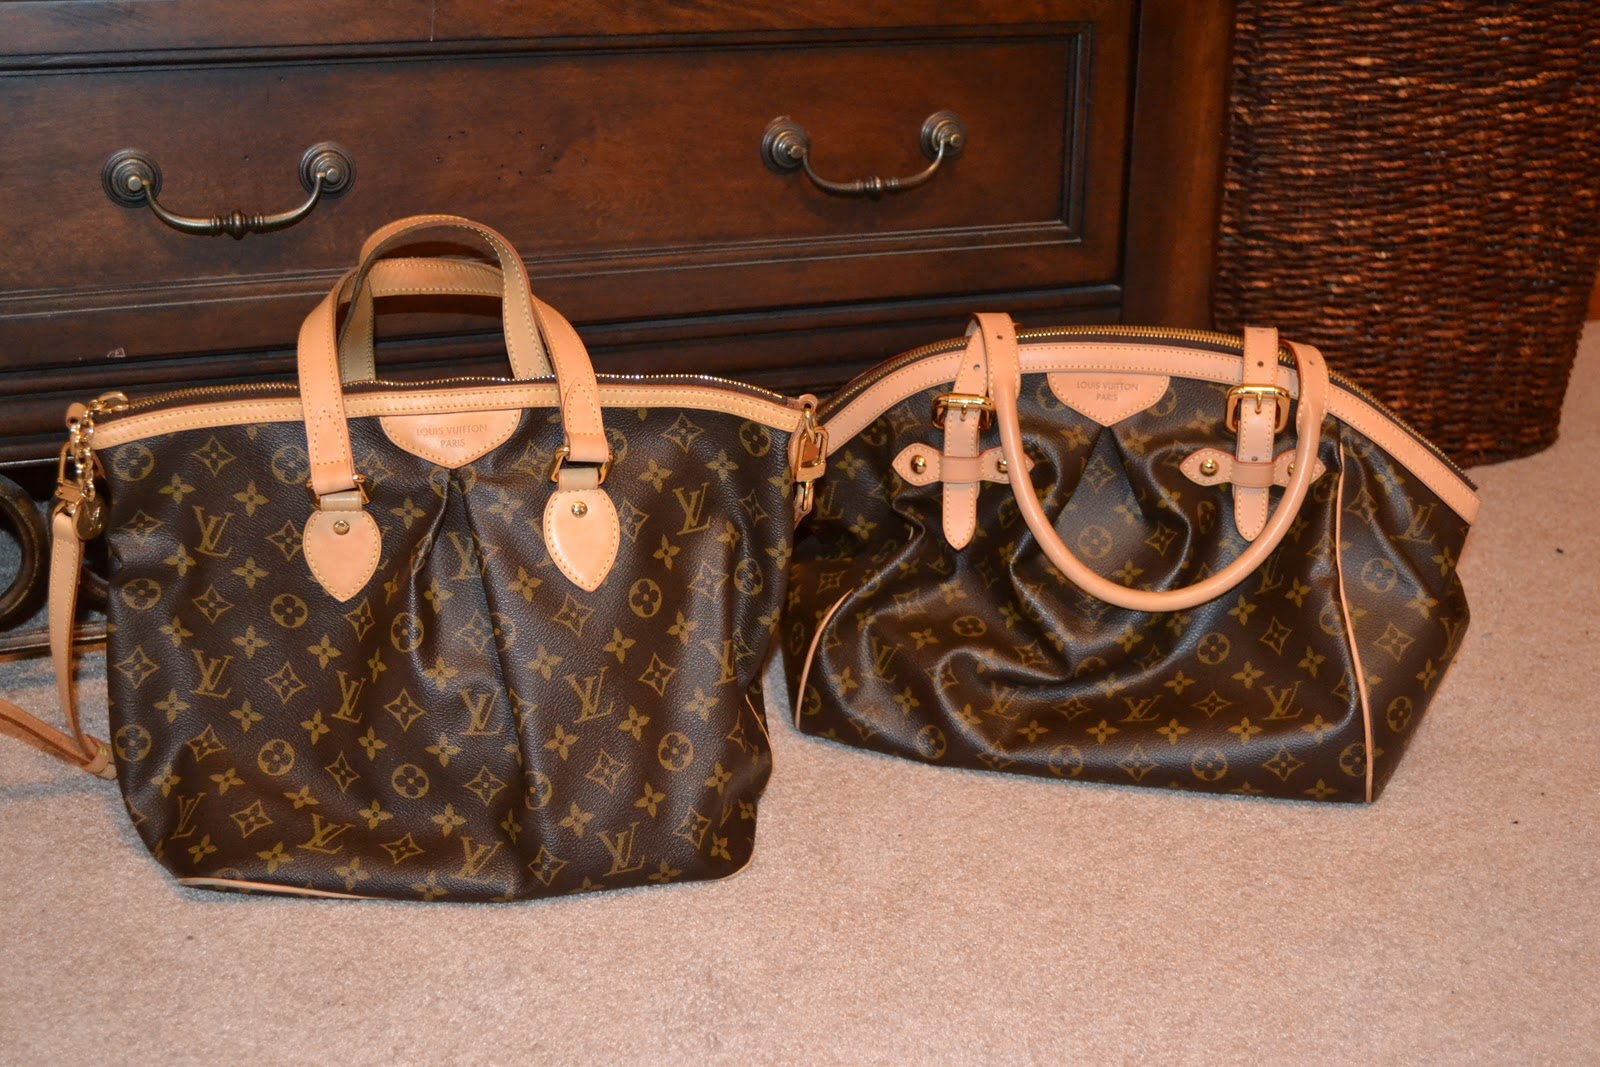 Louis Vuitton Tivoli Vs Palermo Mom S Got A Brand New Bag Louis Vuitton Comparison Review